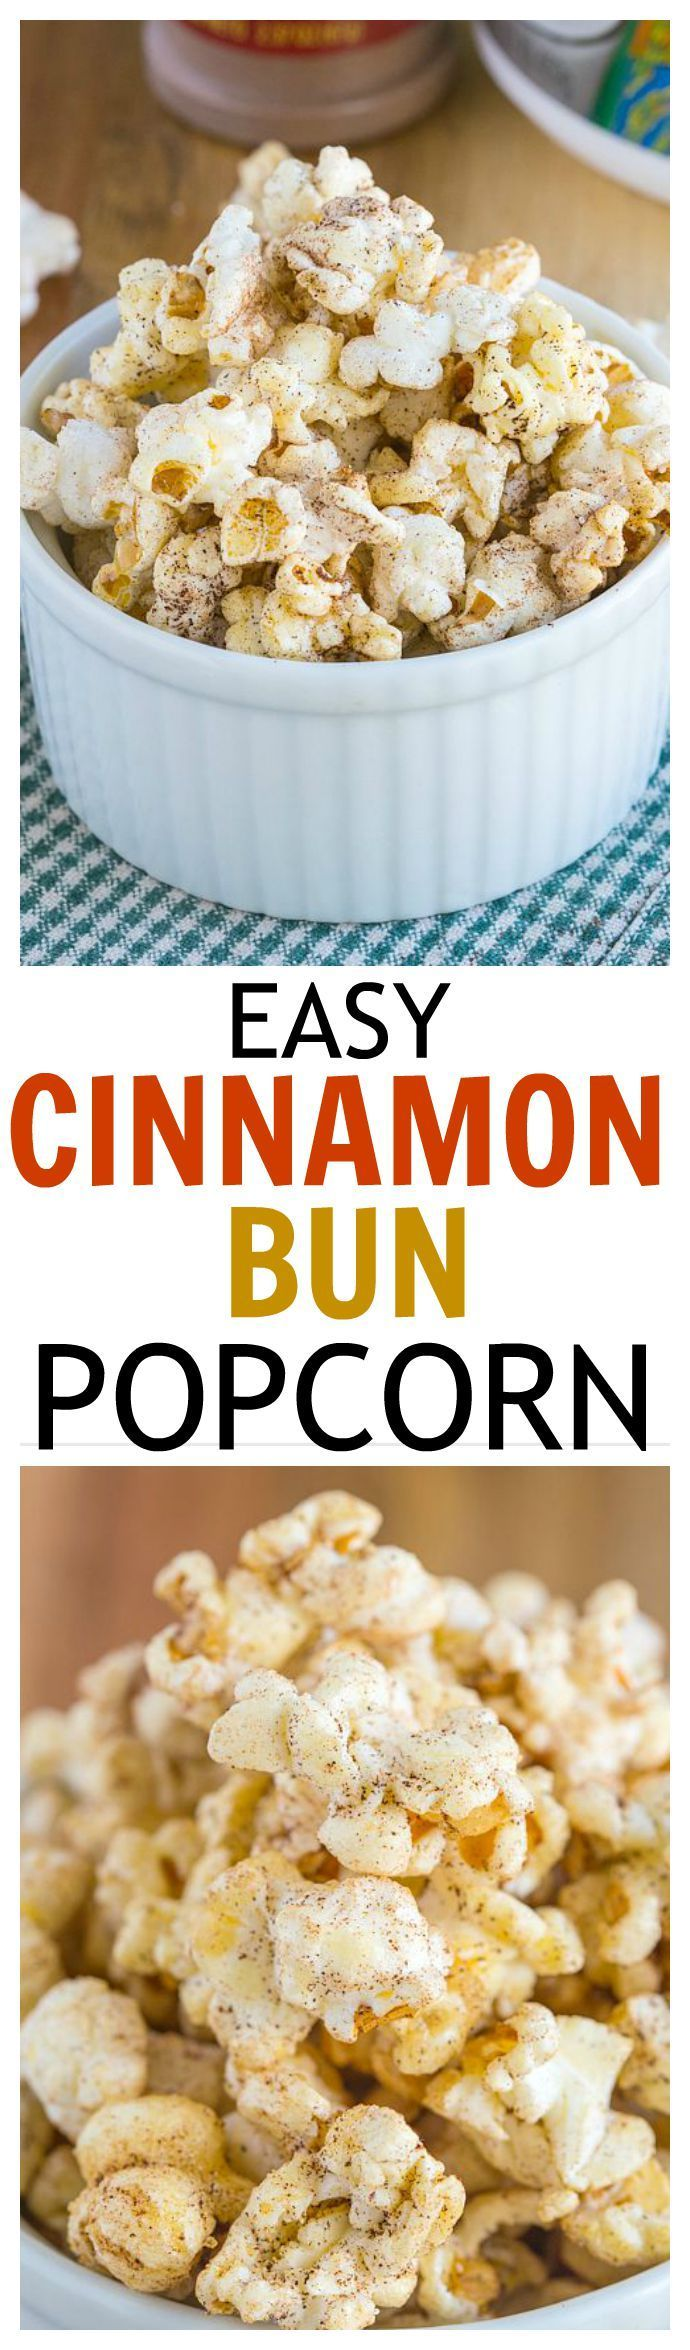 Easy Cinnamon Bun Popcorn - Just three minutes to crispy, sweet and salty popcorn which tastes and smells like fresh cinnamon buns, but with a healthy twist!